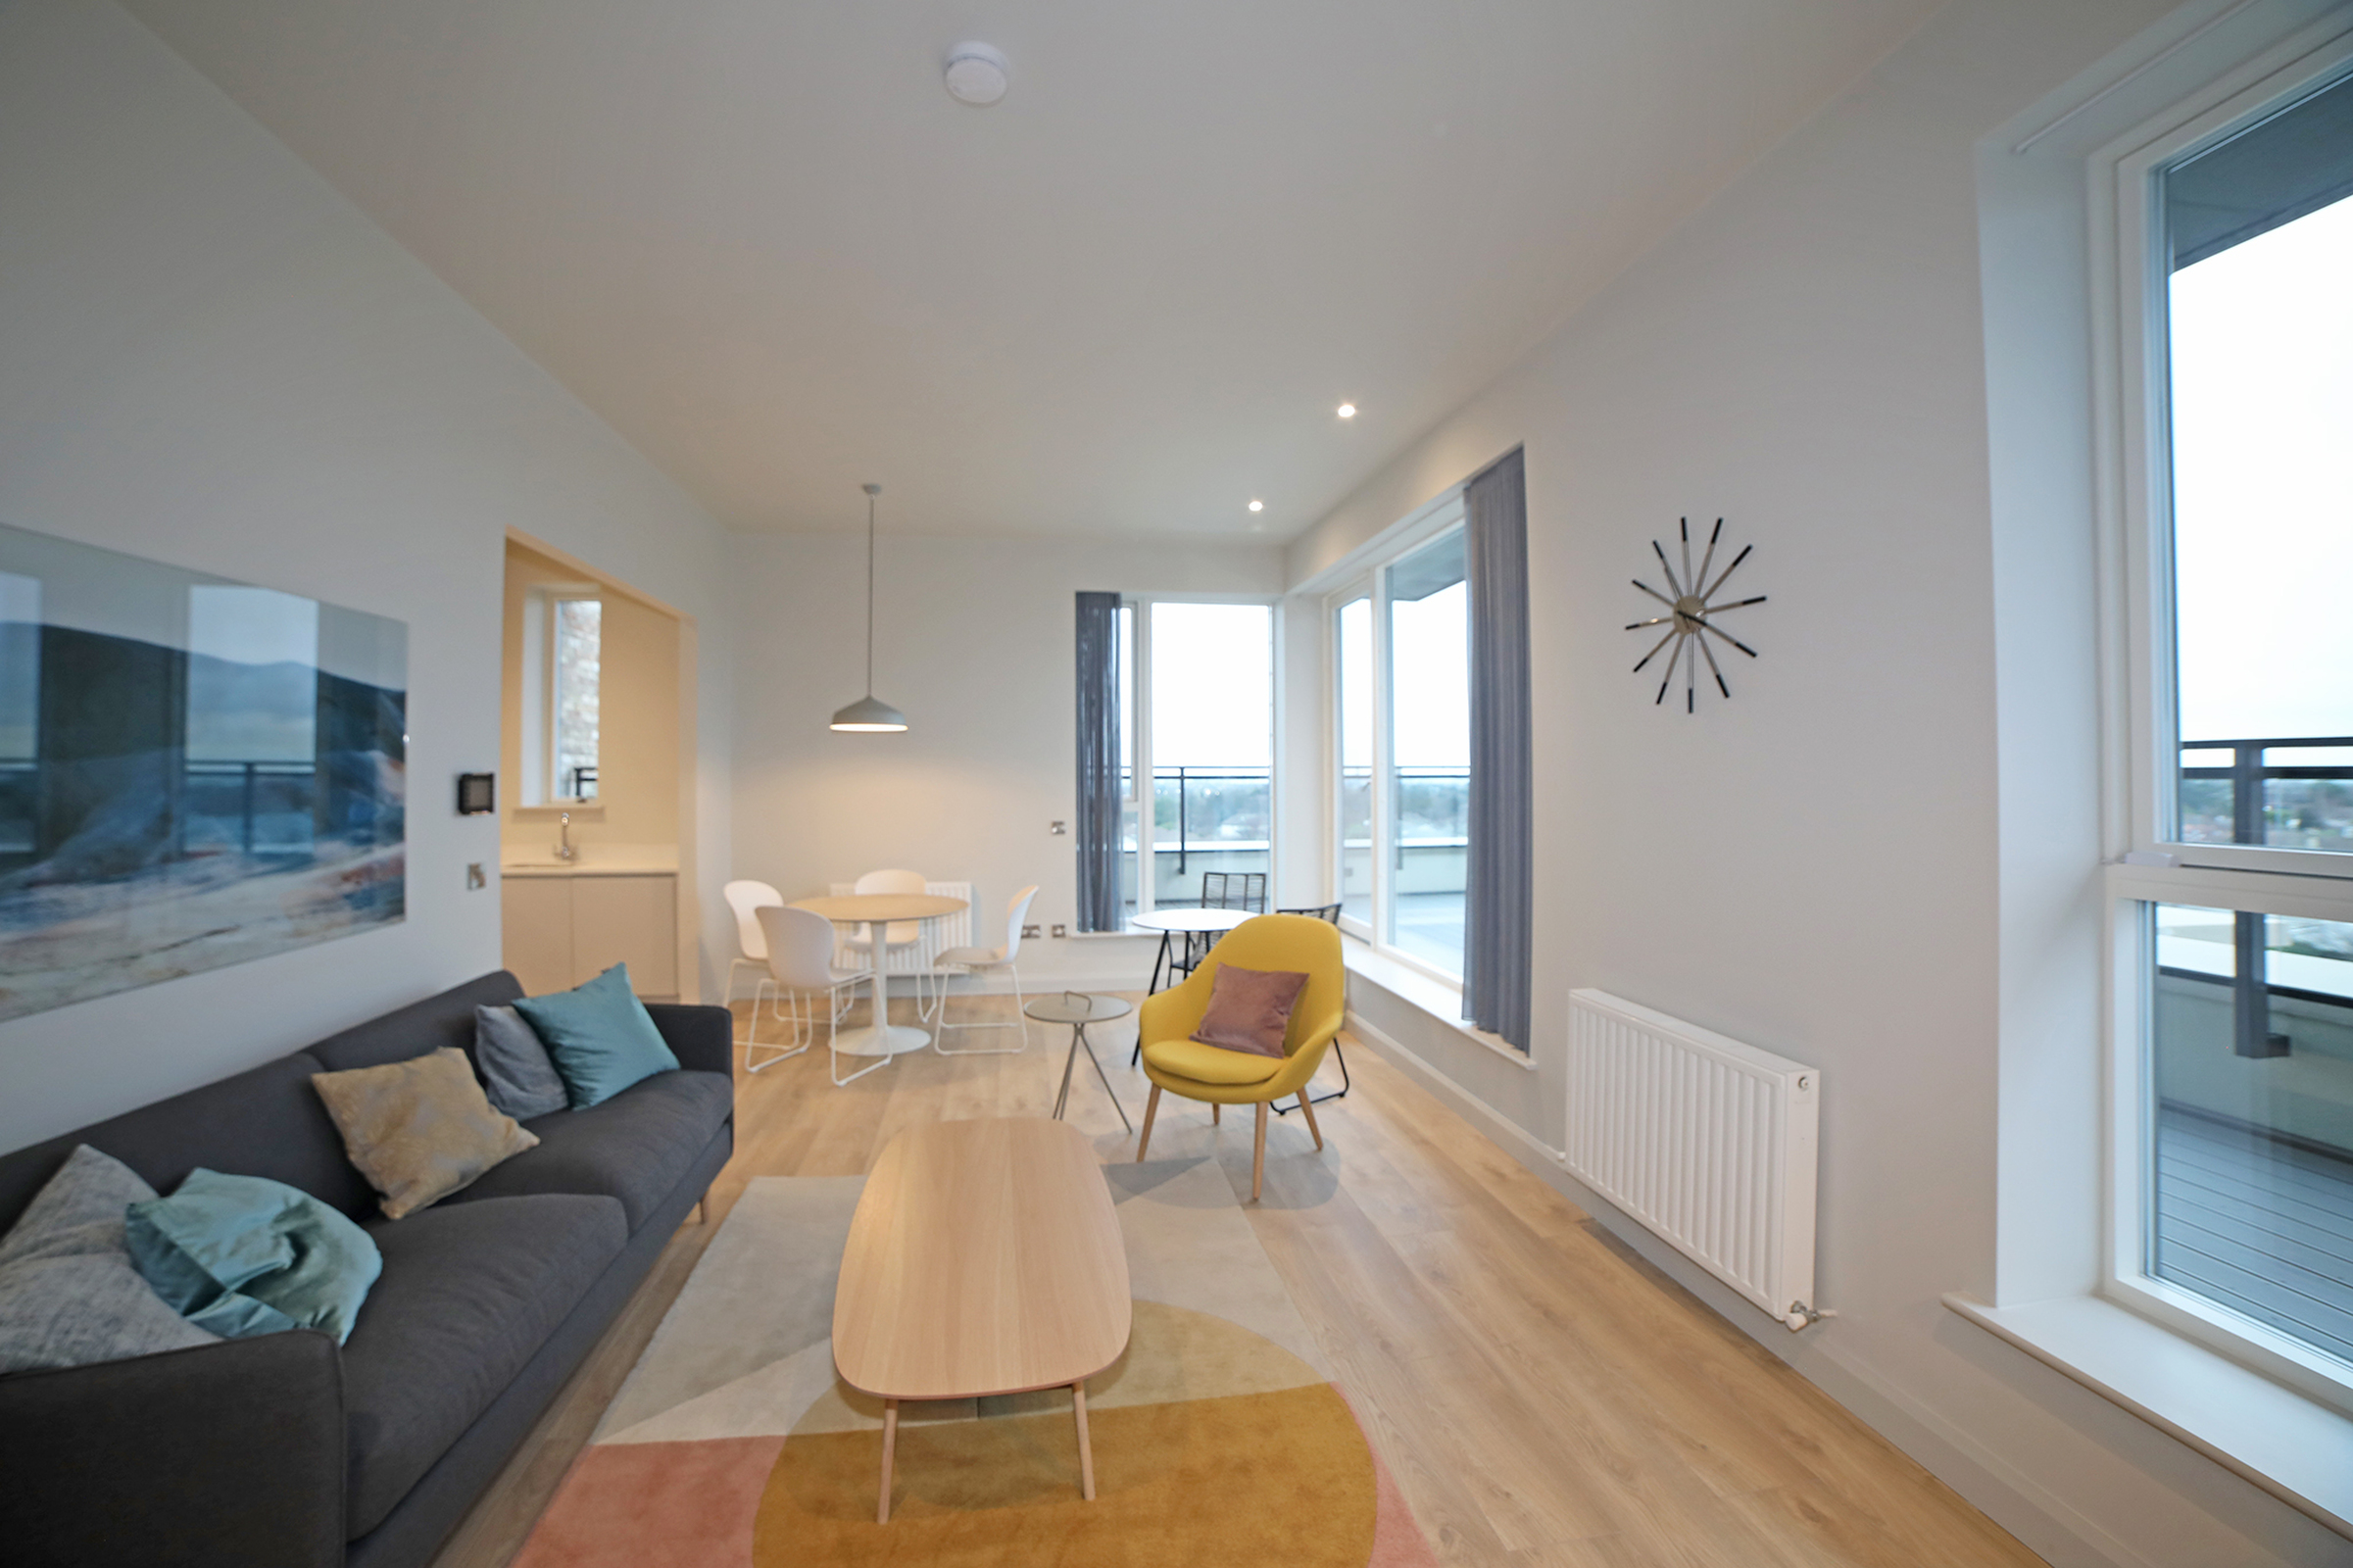 Penthouse 2 Bedroom Apartment, Grove House, The Grove, Goatstown Road, Dublin 4